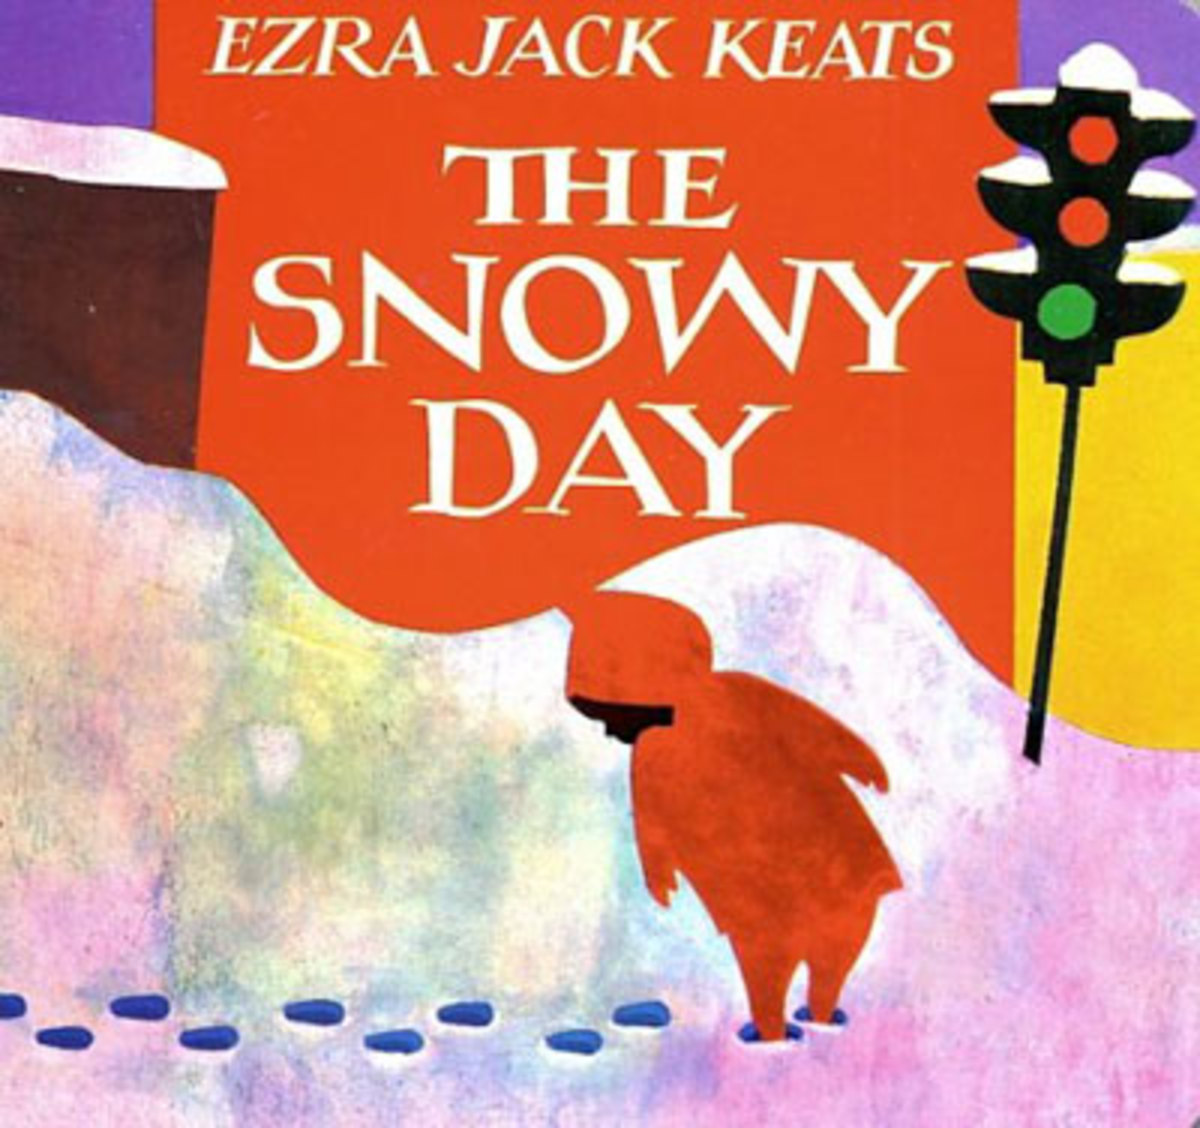 Preschool Lesson Plan for Ezra Jack Keats's The Snowy Day